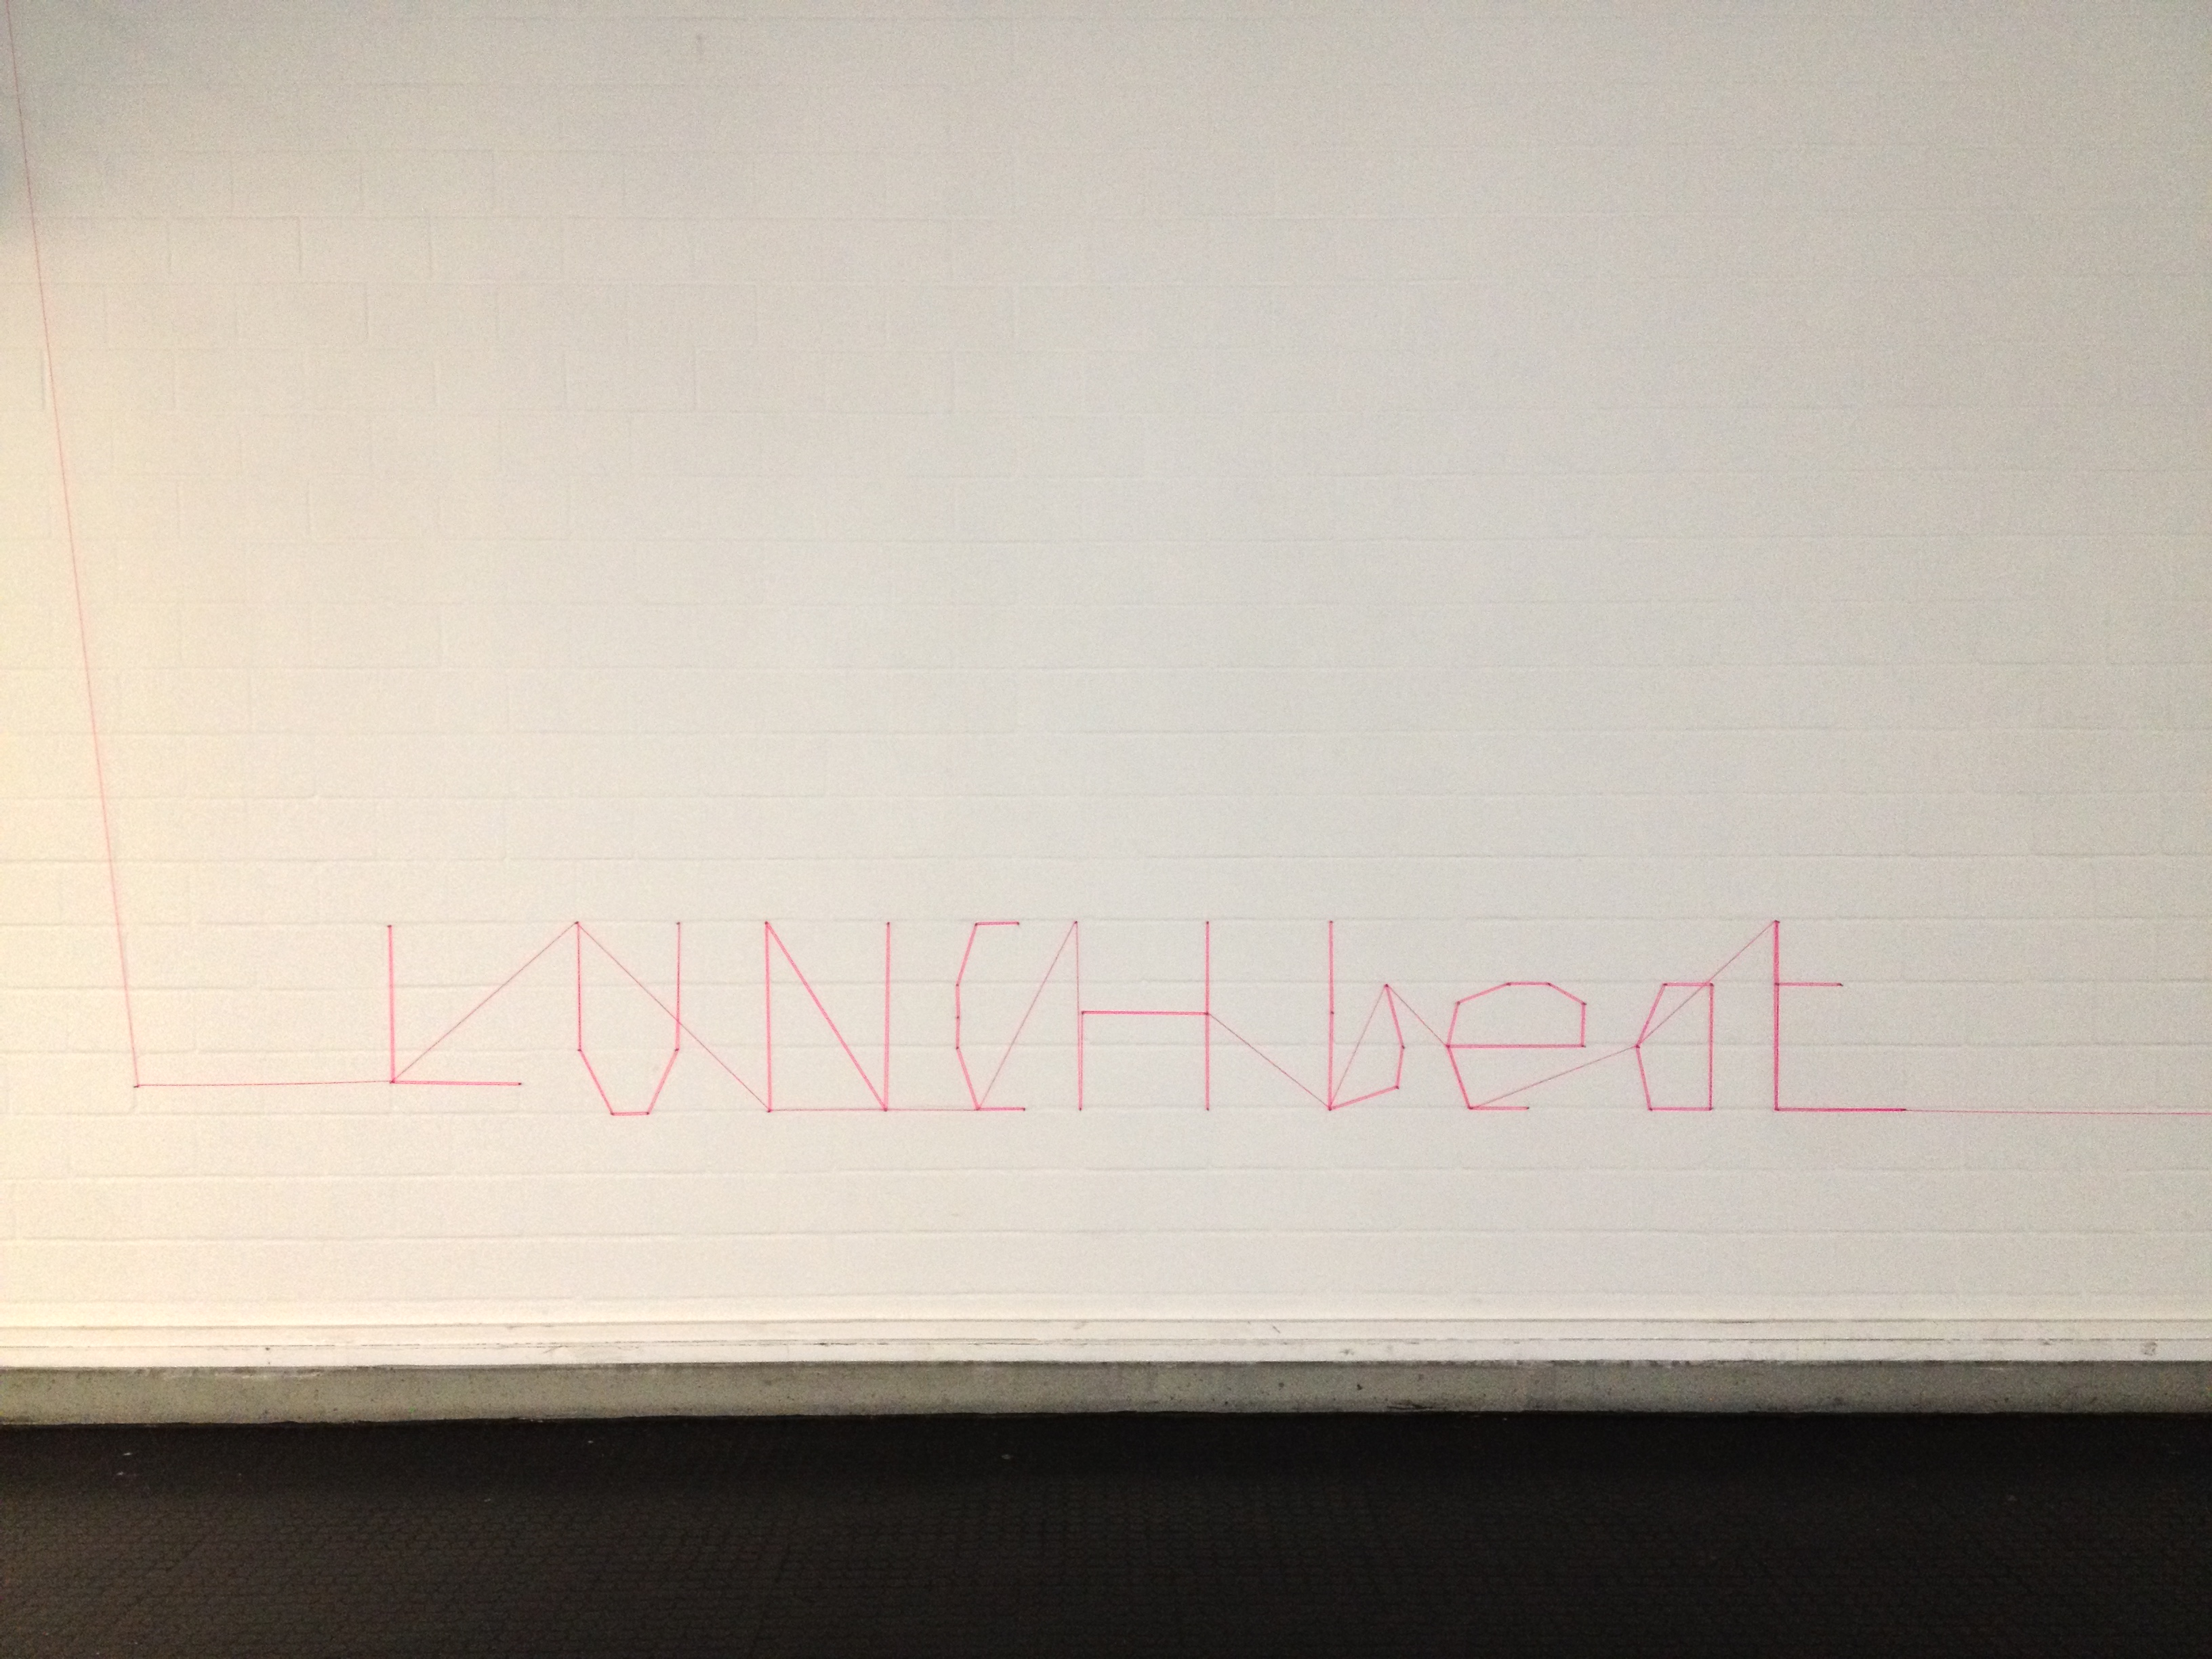 LUNCHbeat